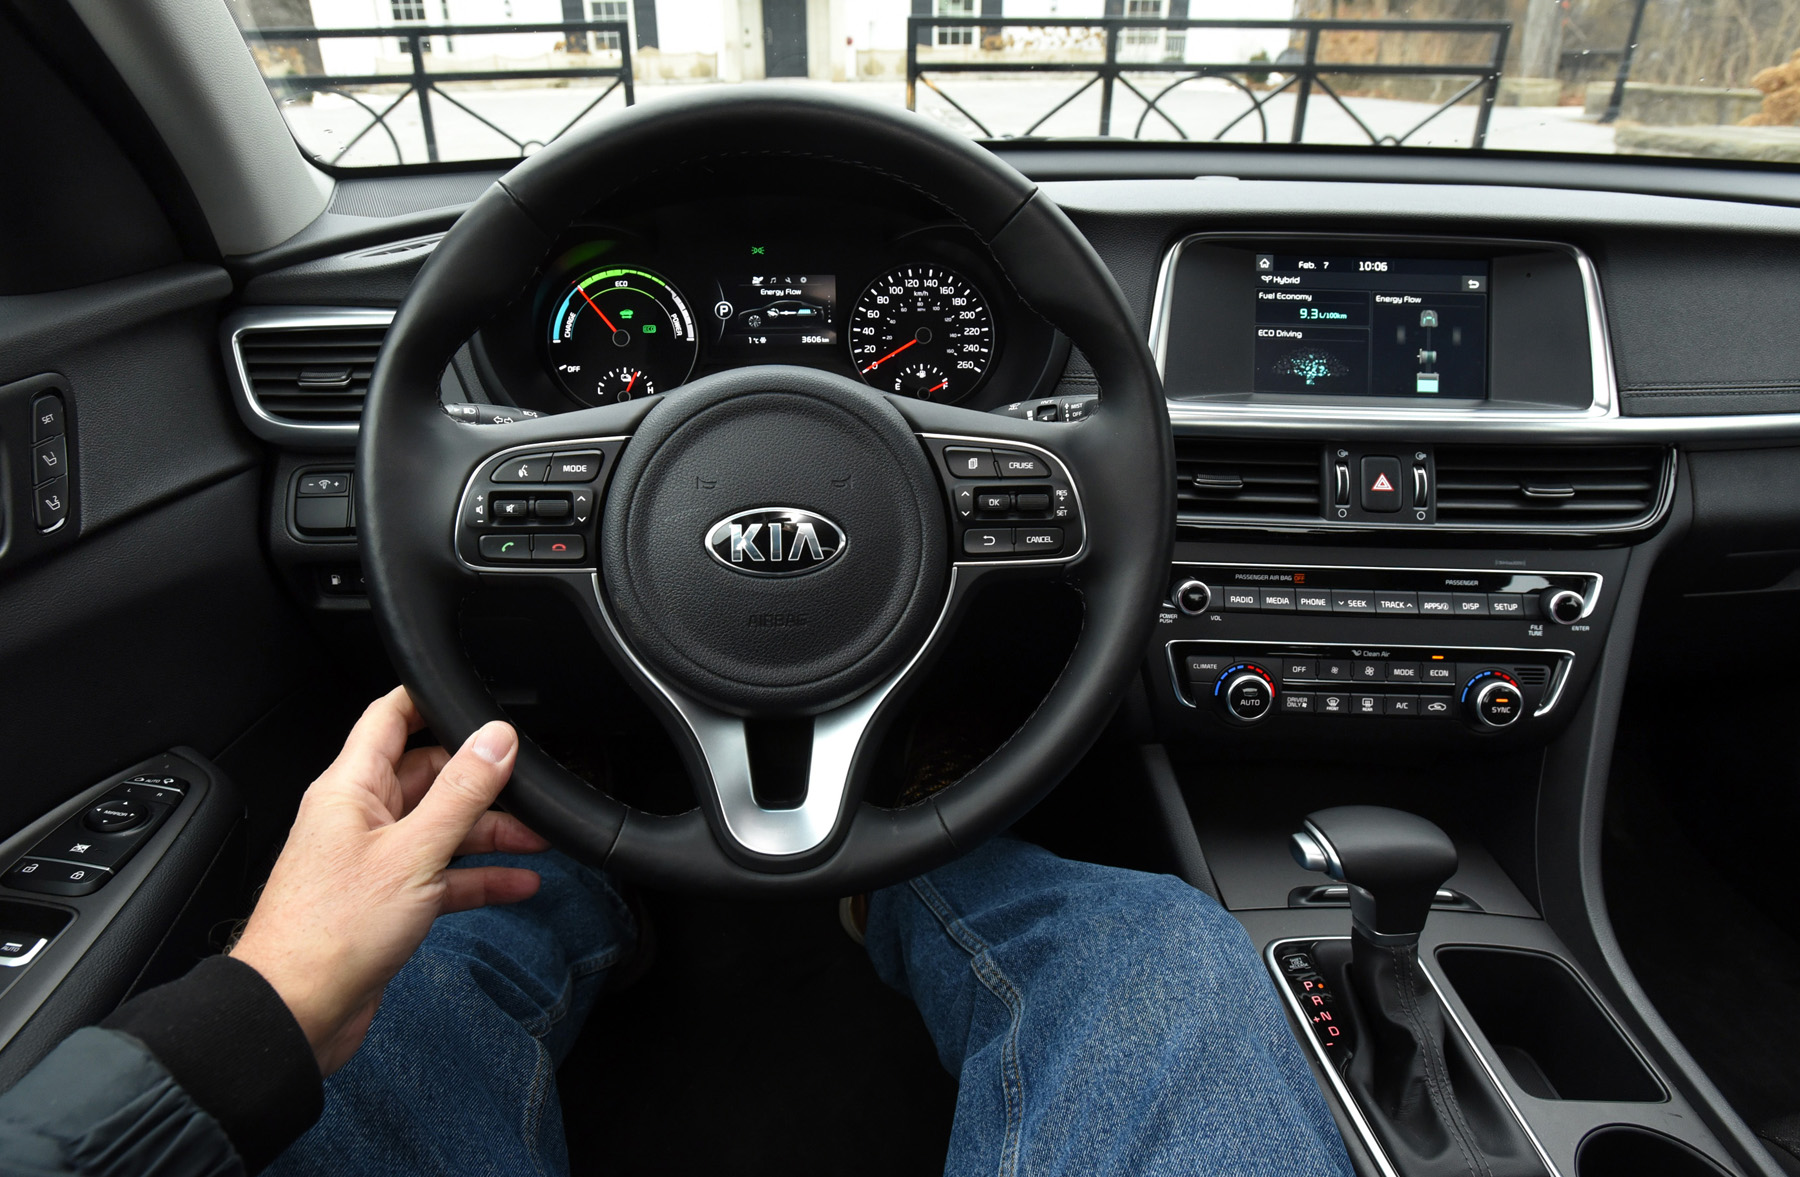 2017 Kia Optima Hybrid Interior | www.indiepedia.org